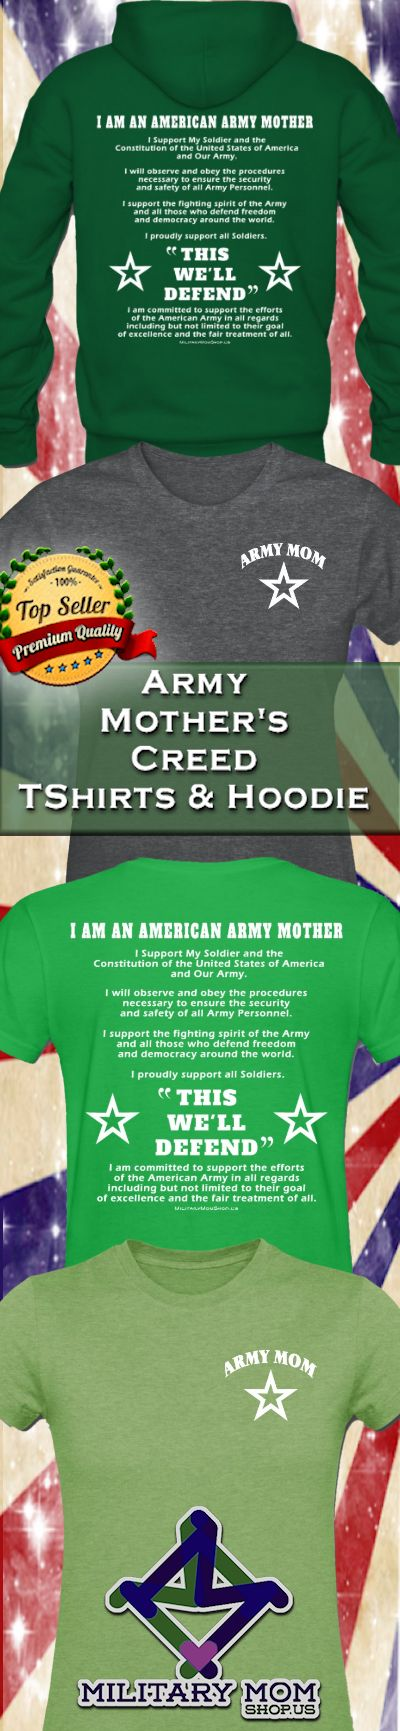 ARMY MOTHER'S CREED SHIRTS & HOODIES #ArmyMom #ArmyMomShirts #ArmyMomSweatshirts #ArmyMomHoodies by MilitaryMomShop.us